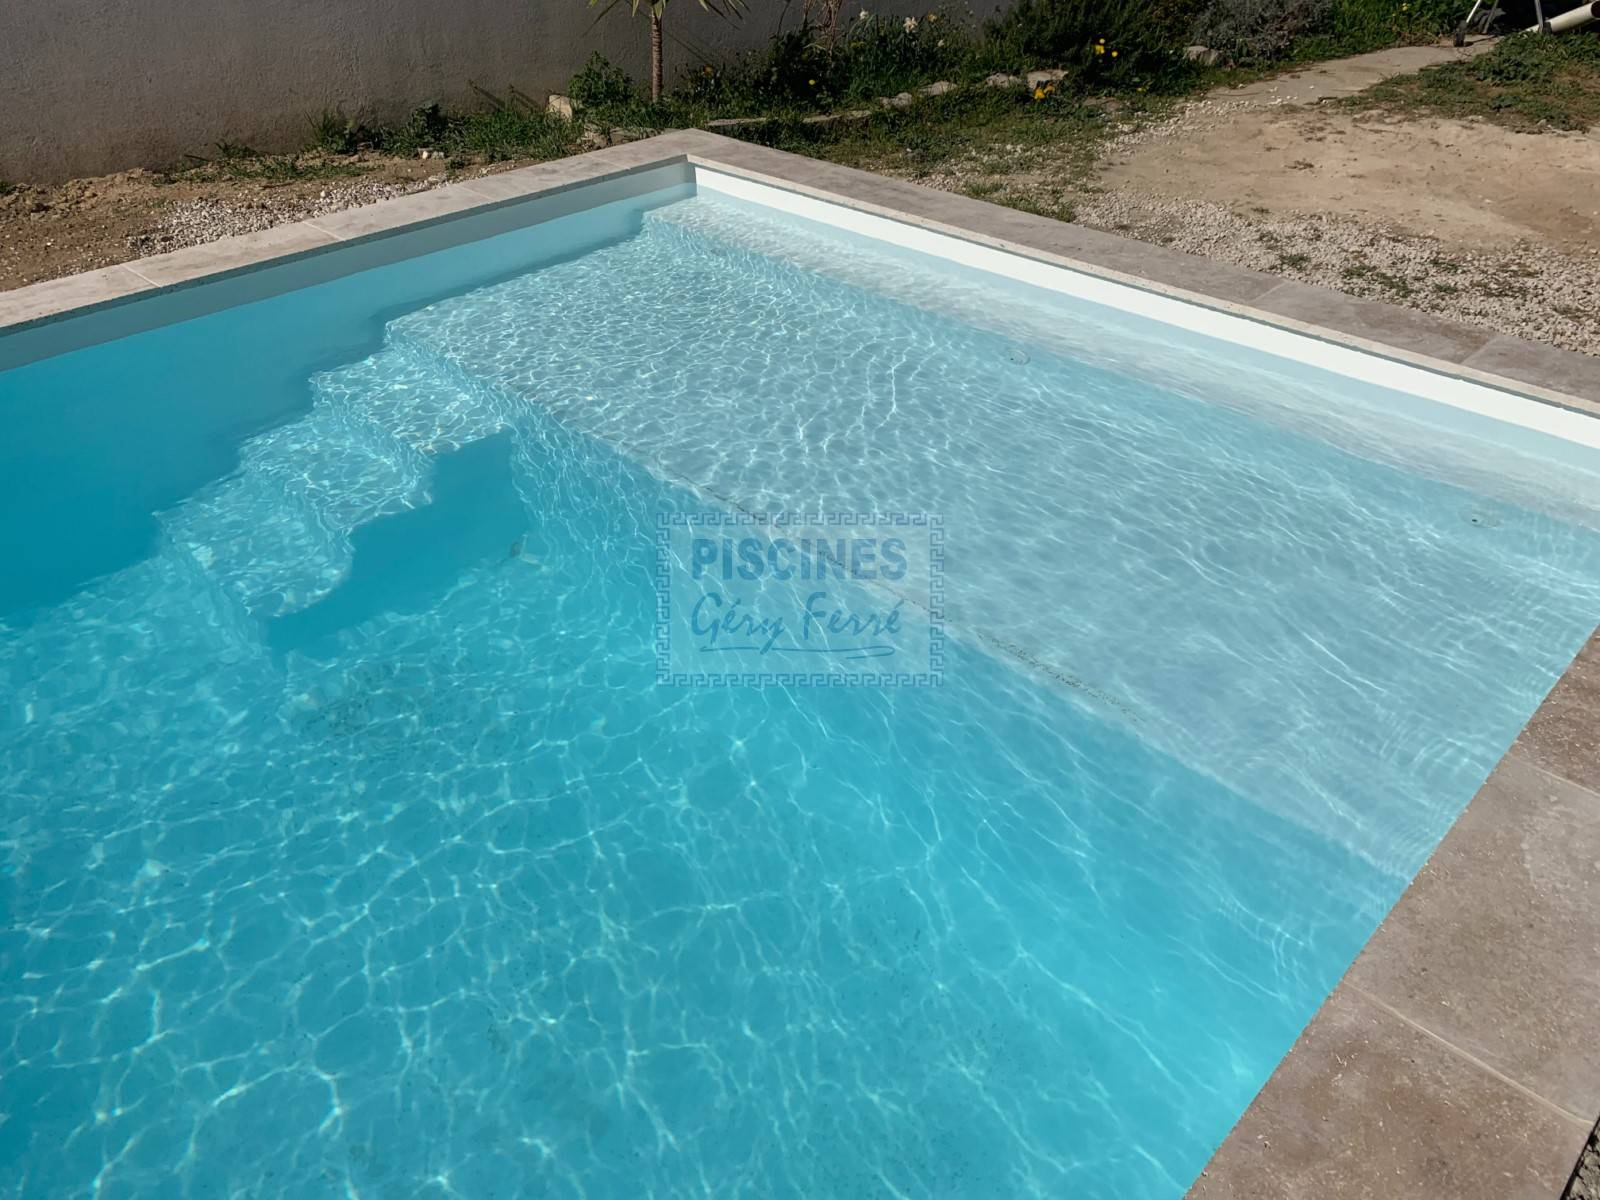 Piscine Kit Coque Polyester Avec Plage Tonga France Piscines ... pour France Piscine Composite